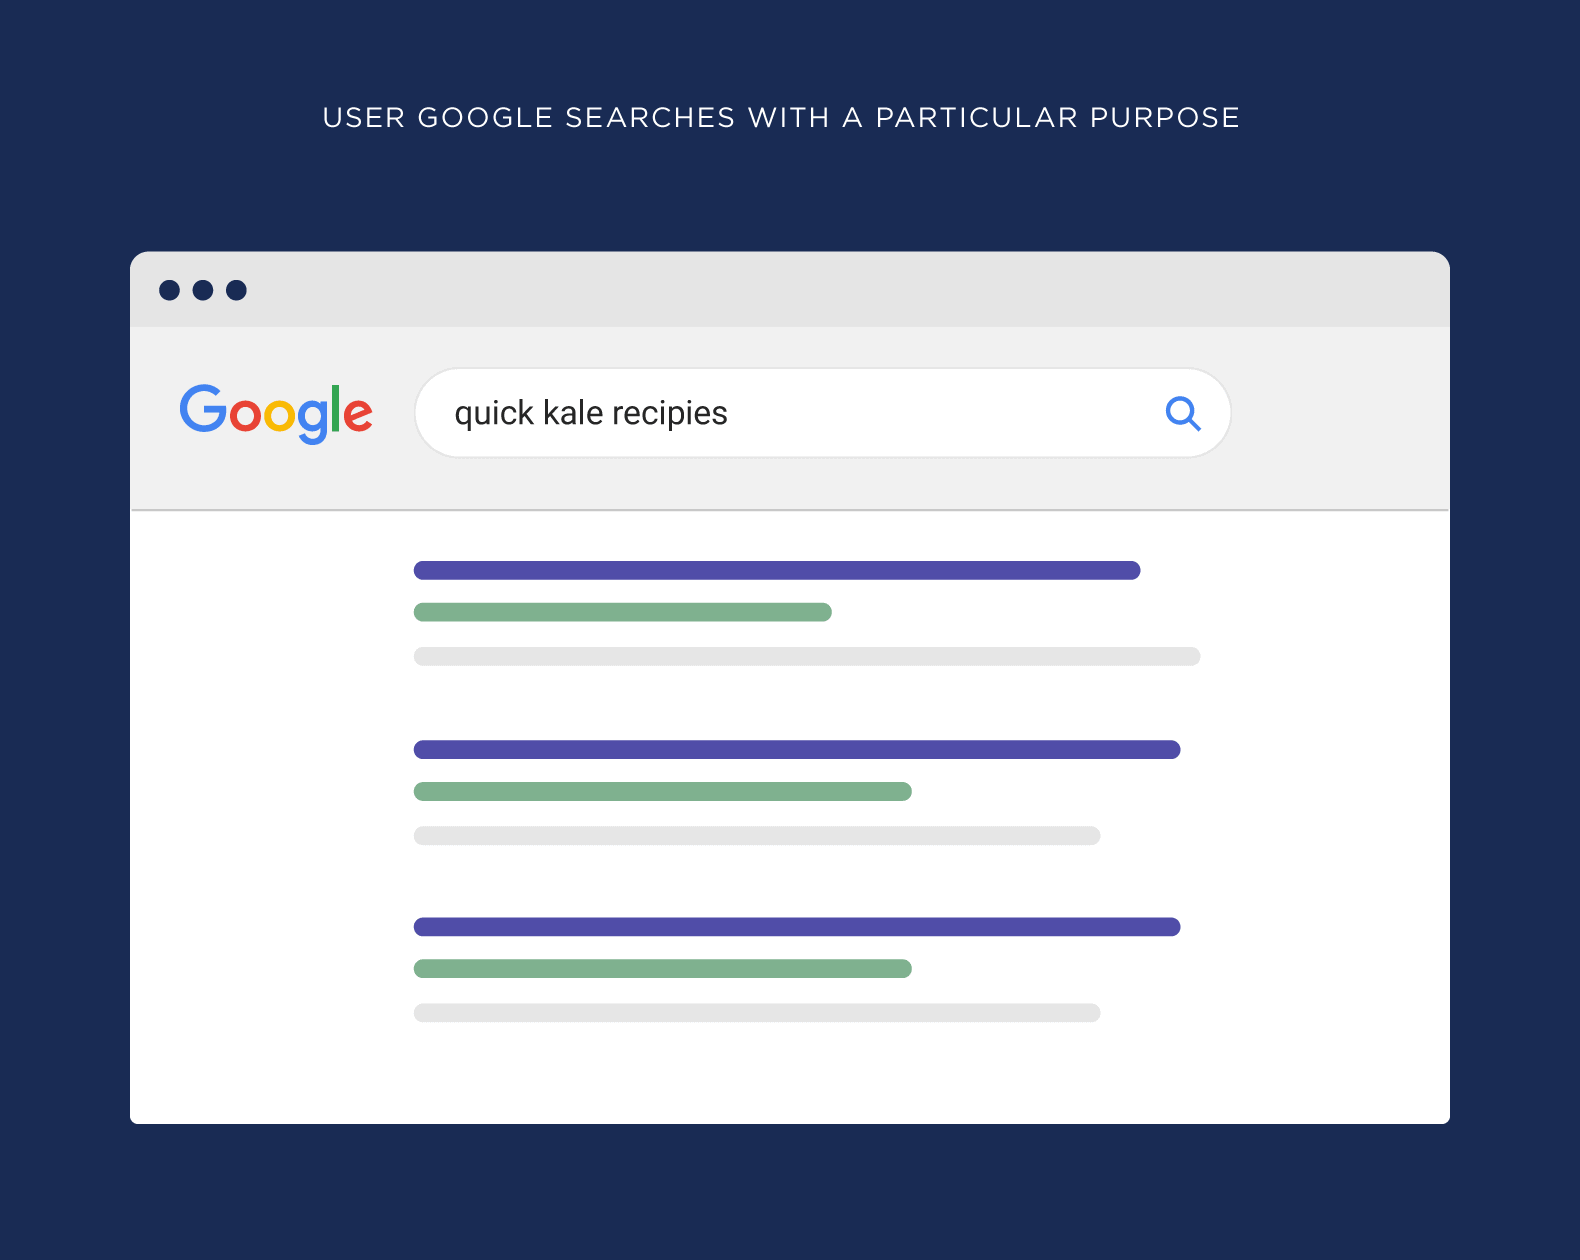 User Google searches with a particular purpose